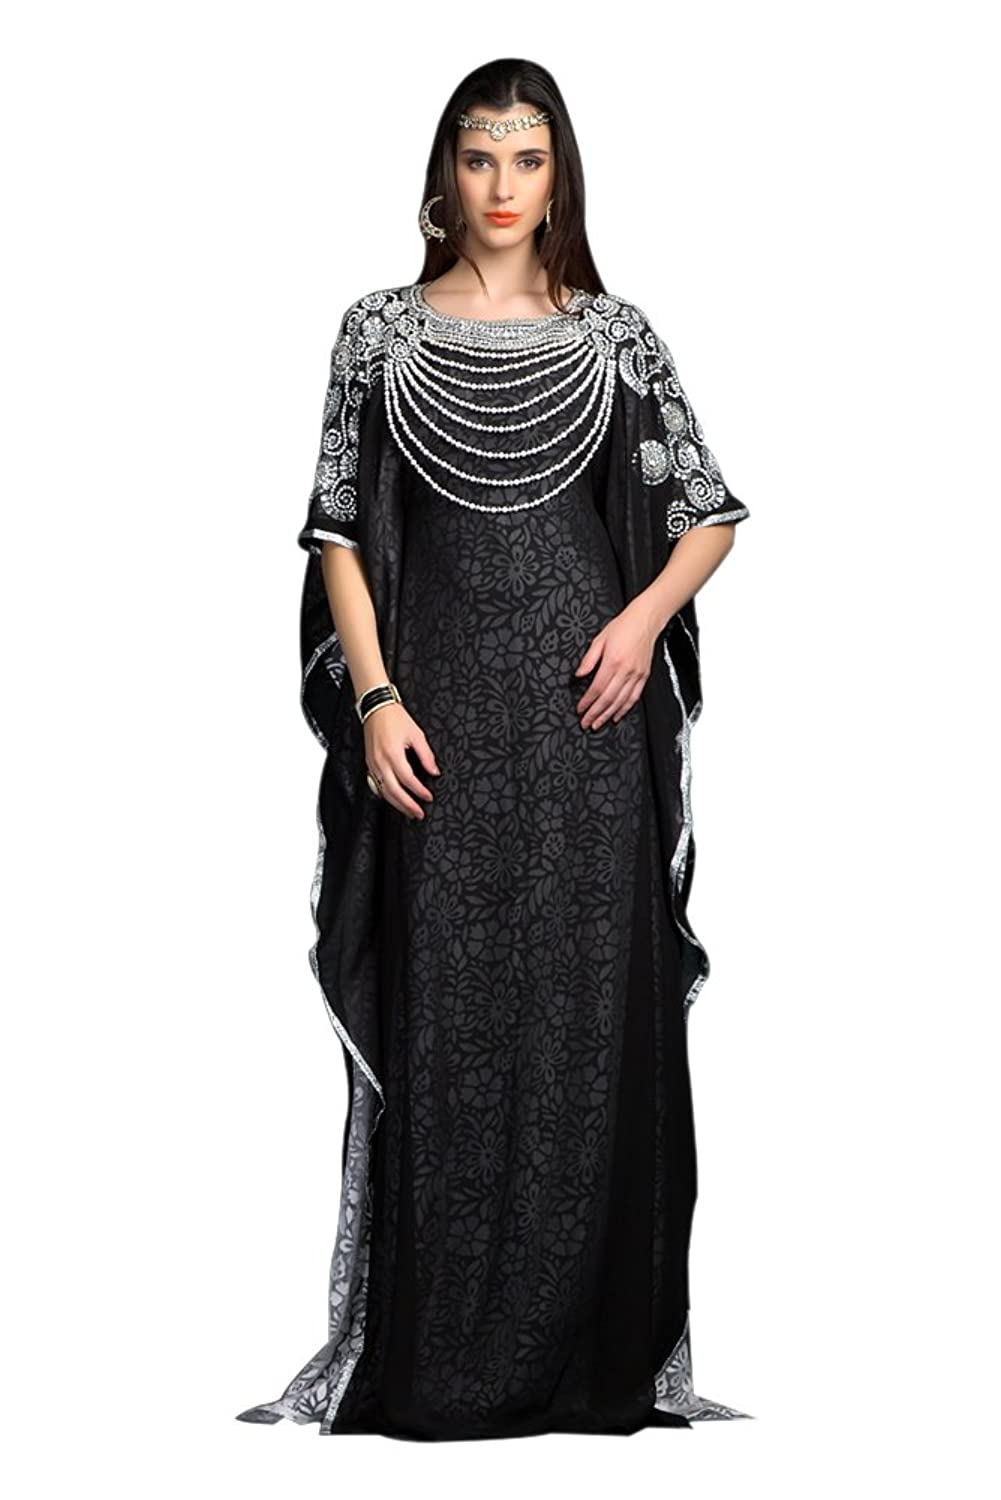 PalasFashion Women's Black and White Designer maxi Dress Kaftan - One Size